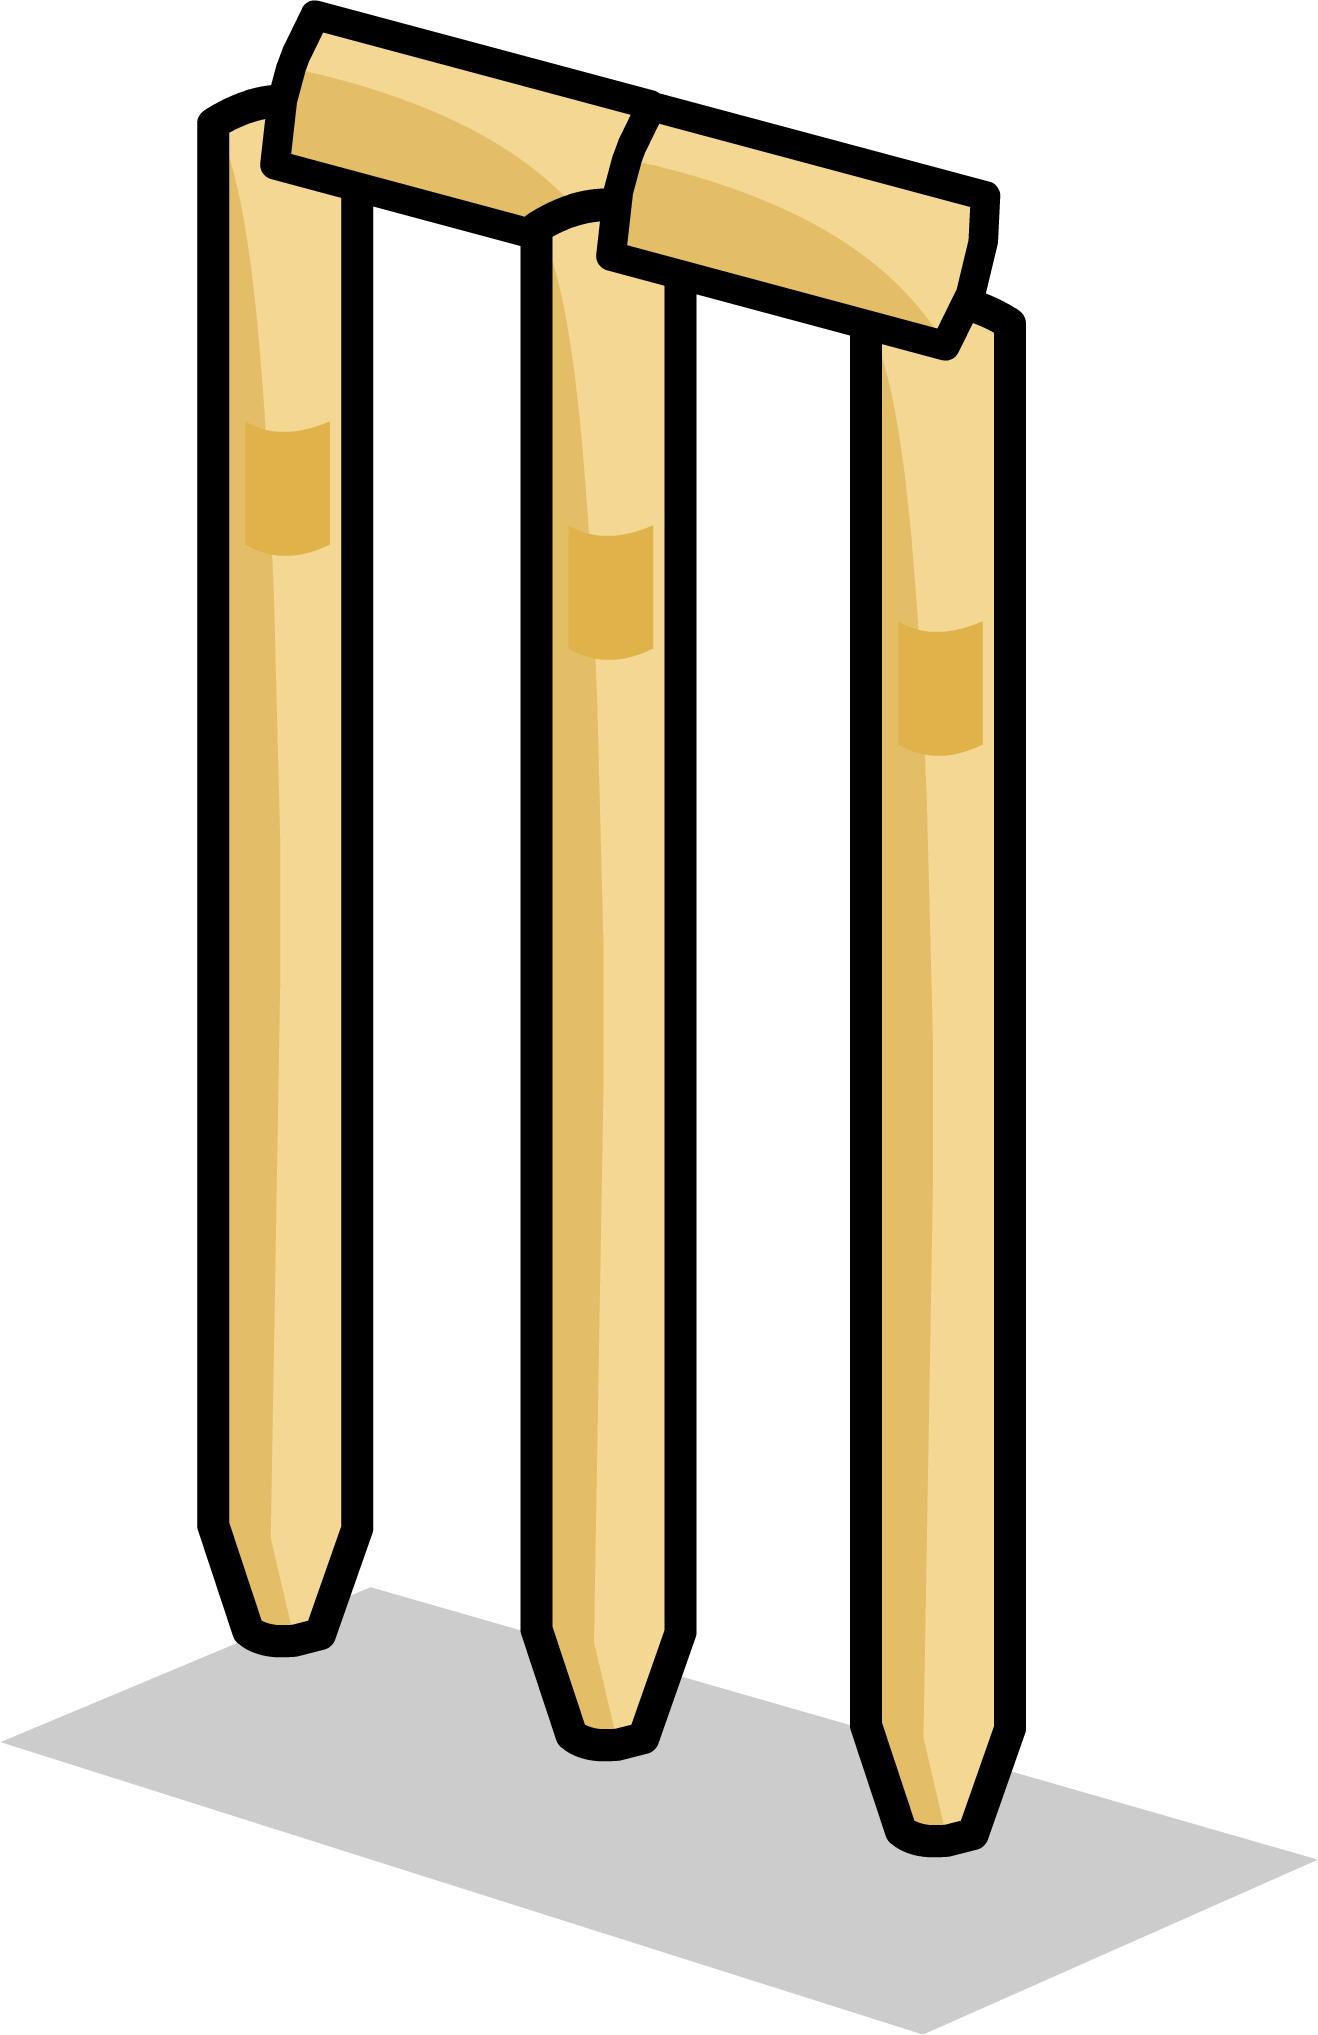 Cricket clipart quiet. Image wickets sprite png